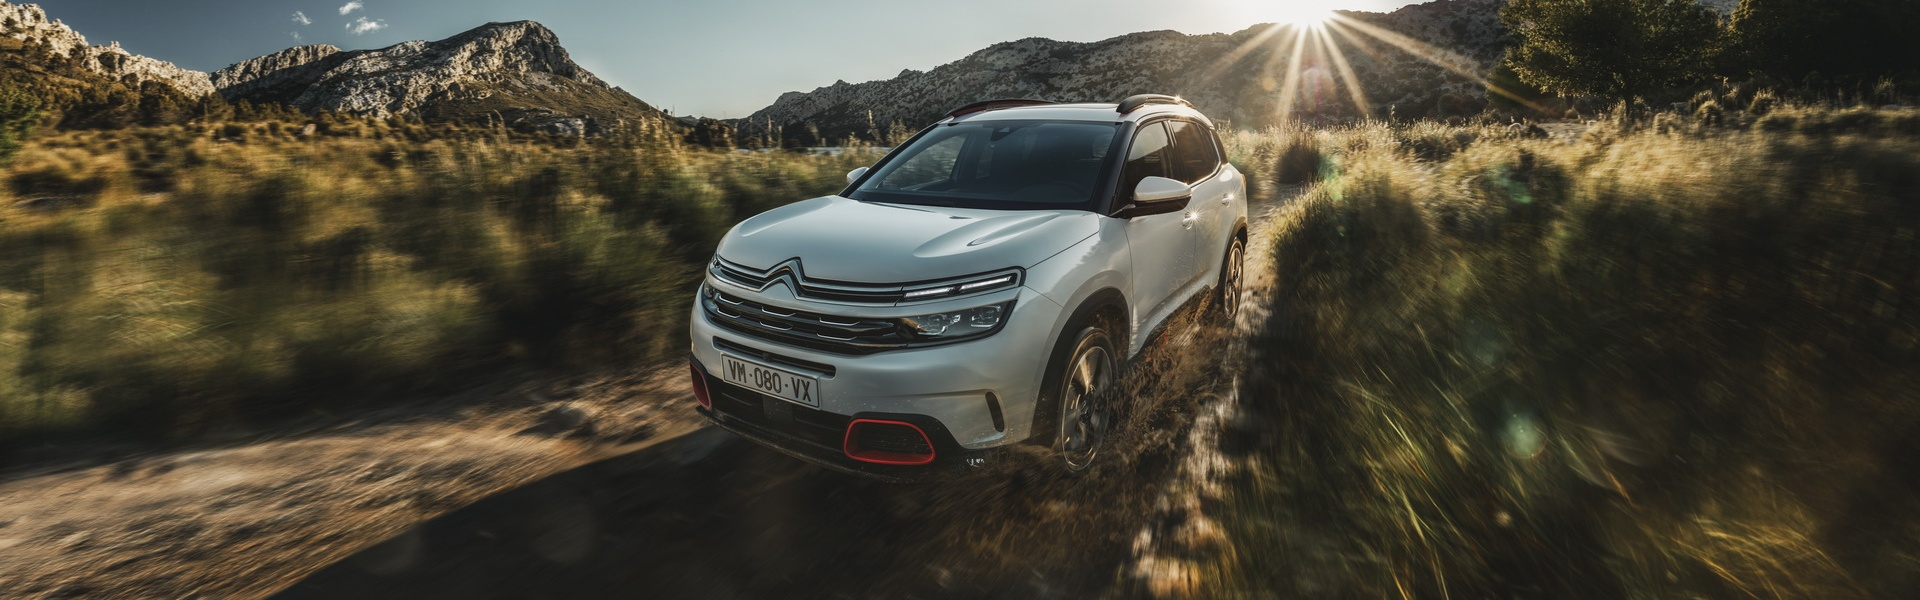 citroen-c5-aircross-uk-pricing-specs-8.jpg